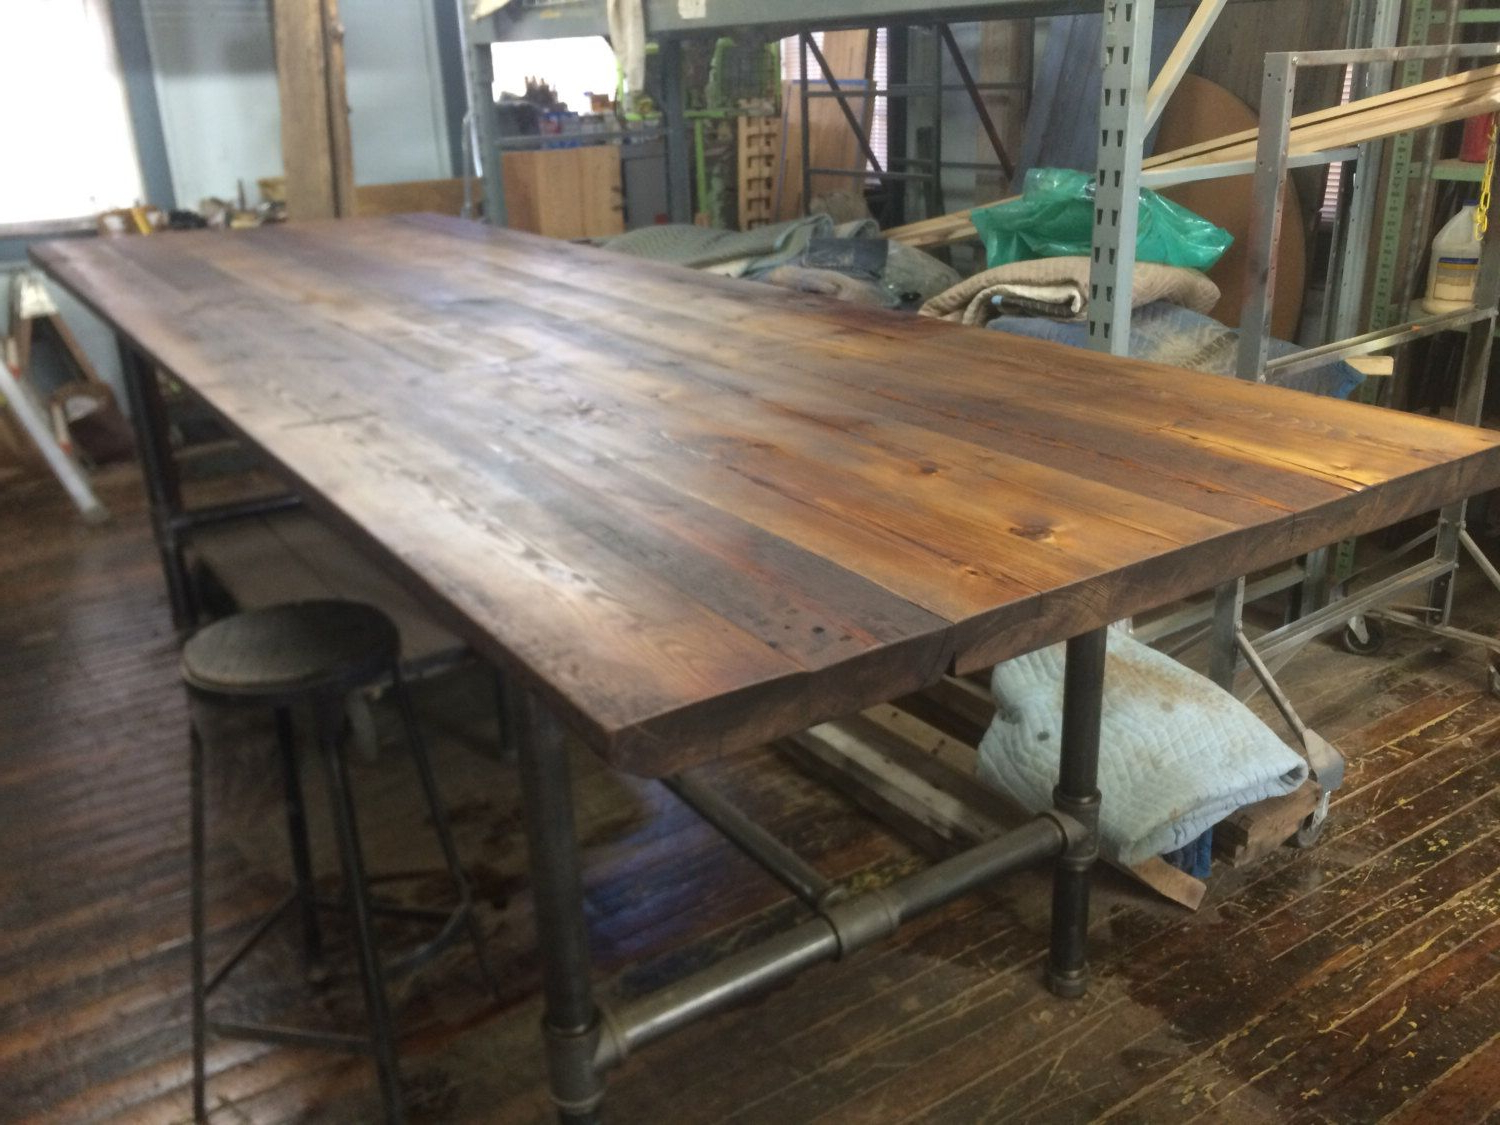 2020 Pin On Park Place in Griffin Reclaimed Wood Bar-Height Tables